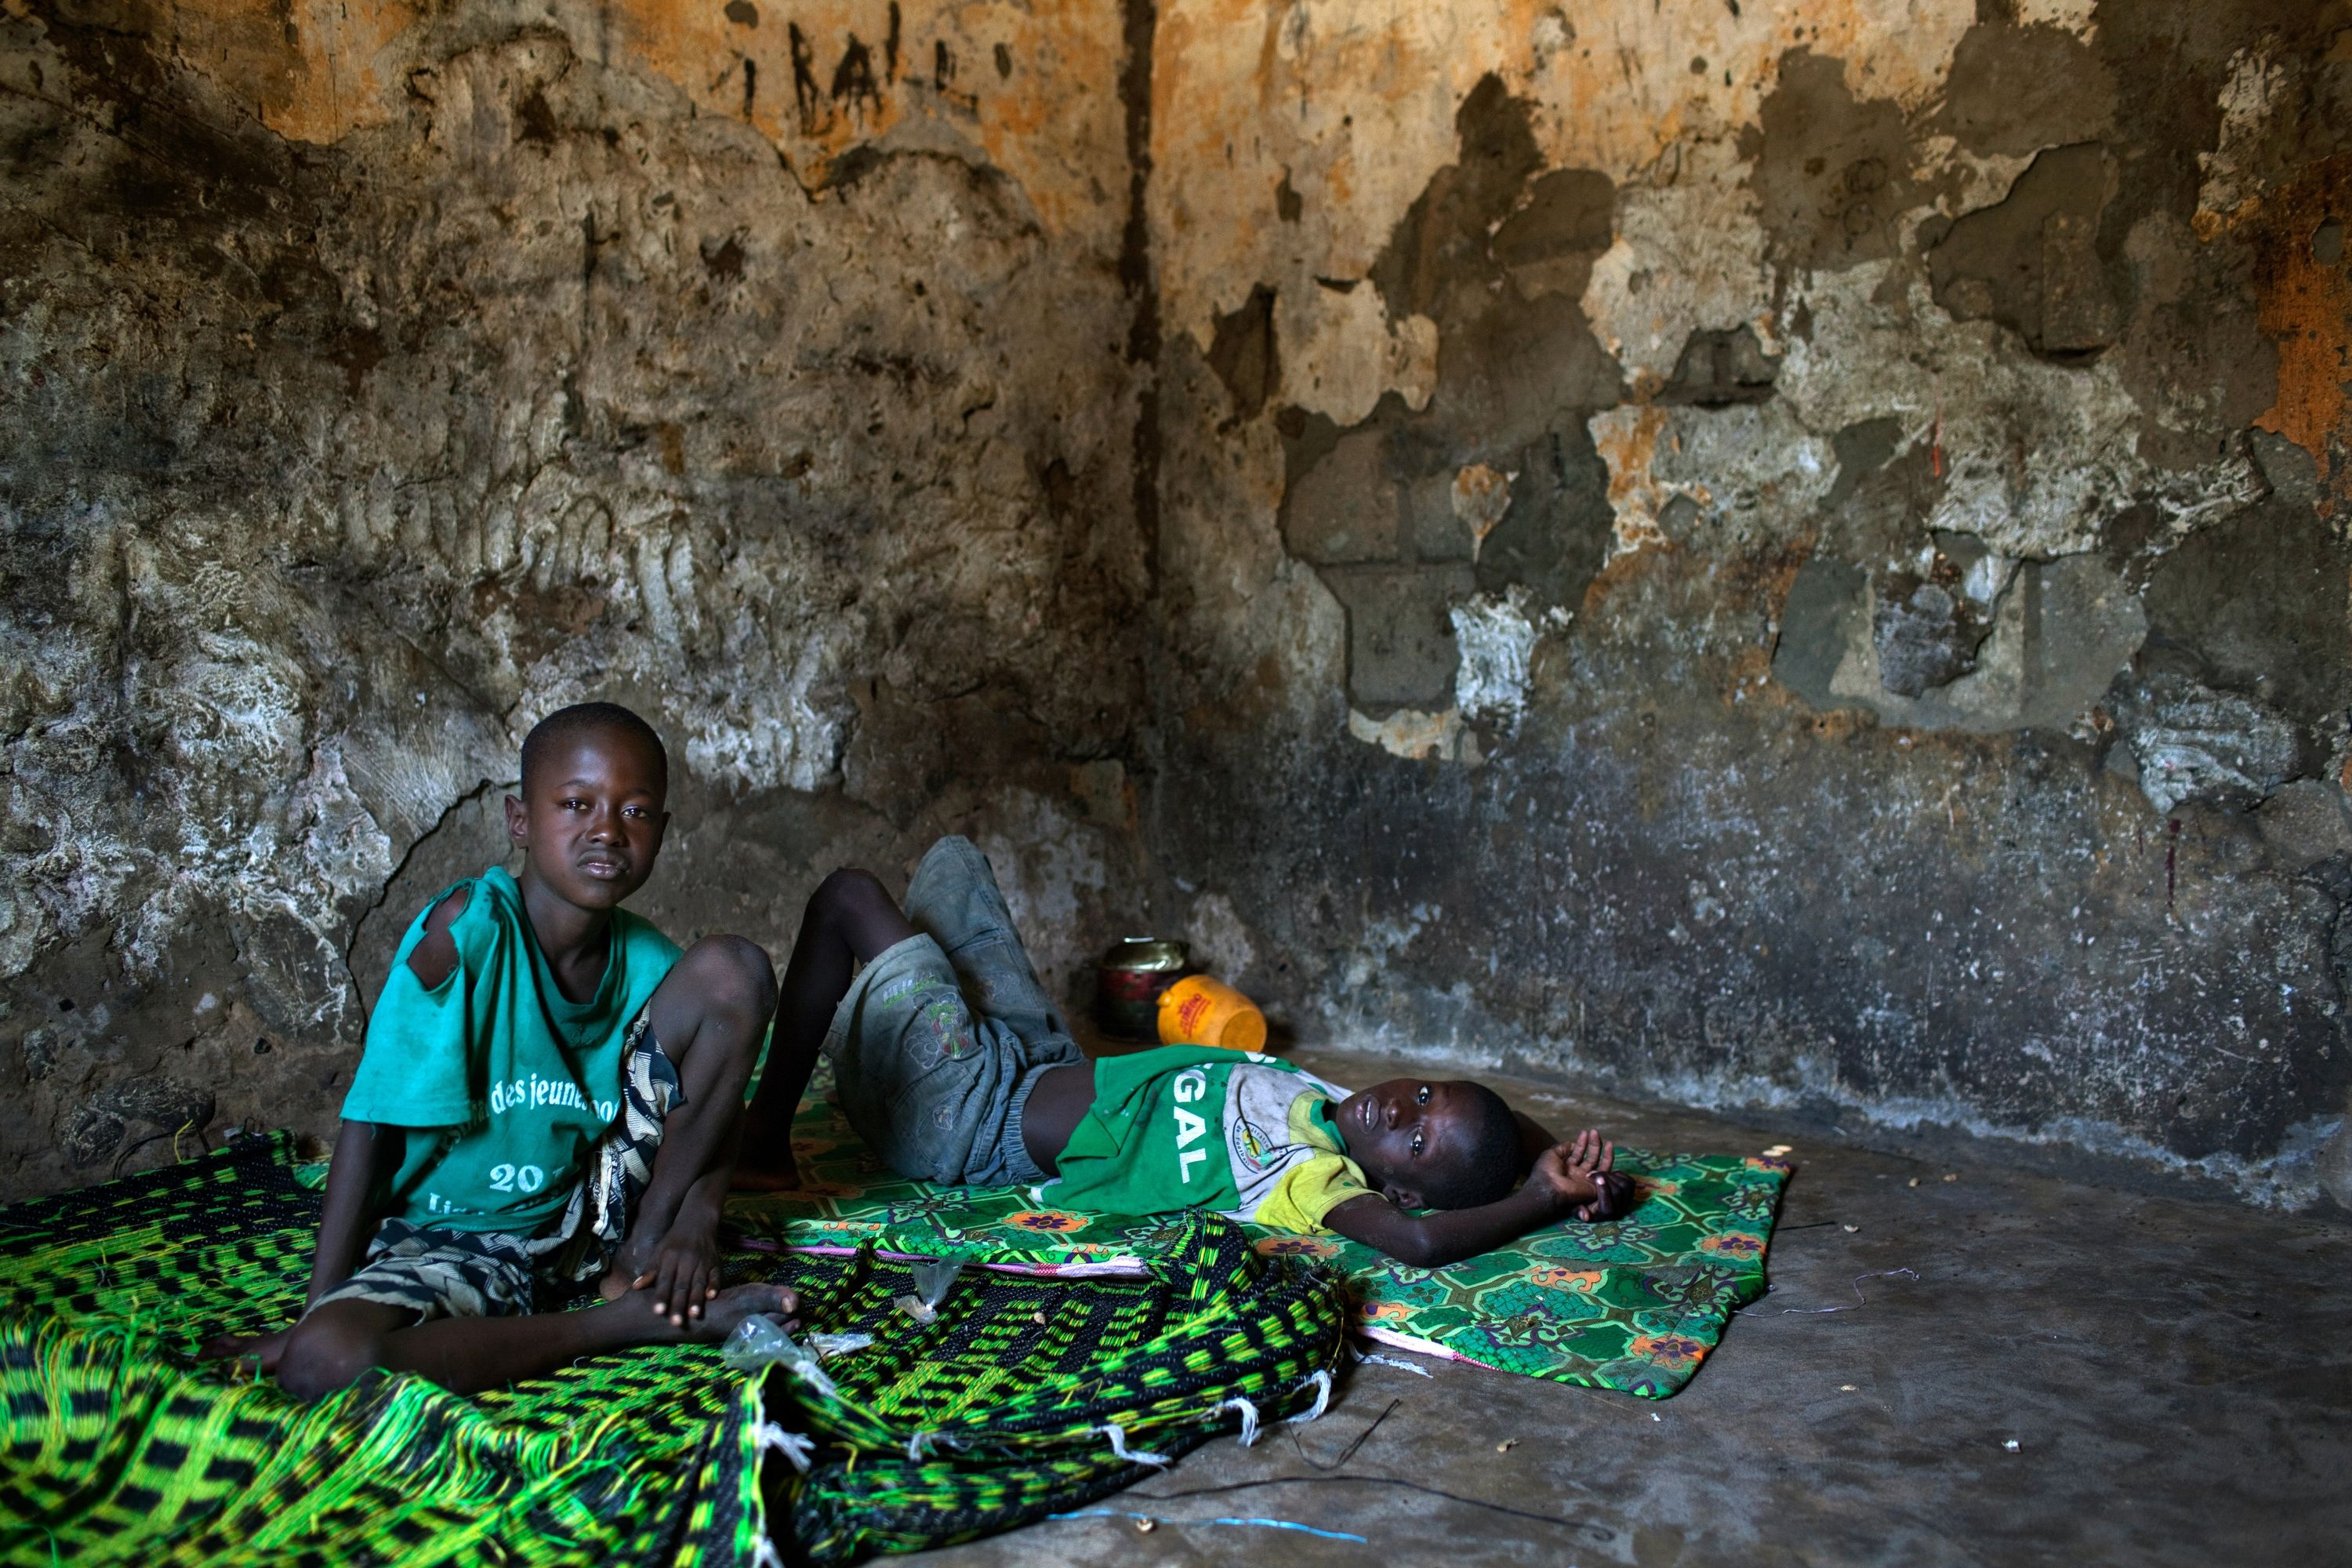 """""""Hundreds of thousands of Senegalese children, mostly from poor rural areas, have been sent by their parents to town, ostensibly for an education. Most often, their parents cannot afford to pay for their food or education. The result is that boys are forced to beg to raise money for their teachers."""" More at https://www.globalfundforchildren.org/route-out-of-begging-for-senegal-children/"""